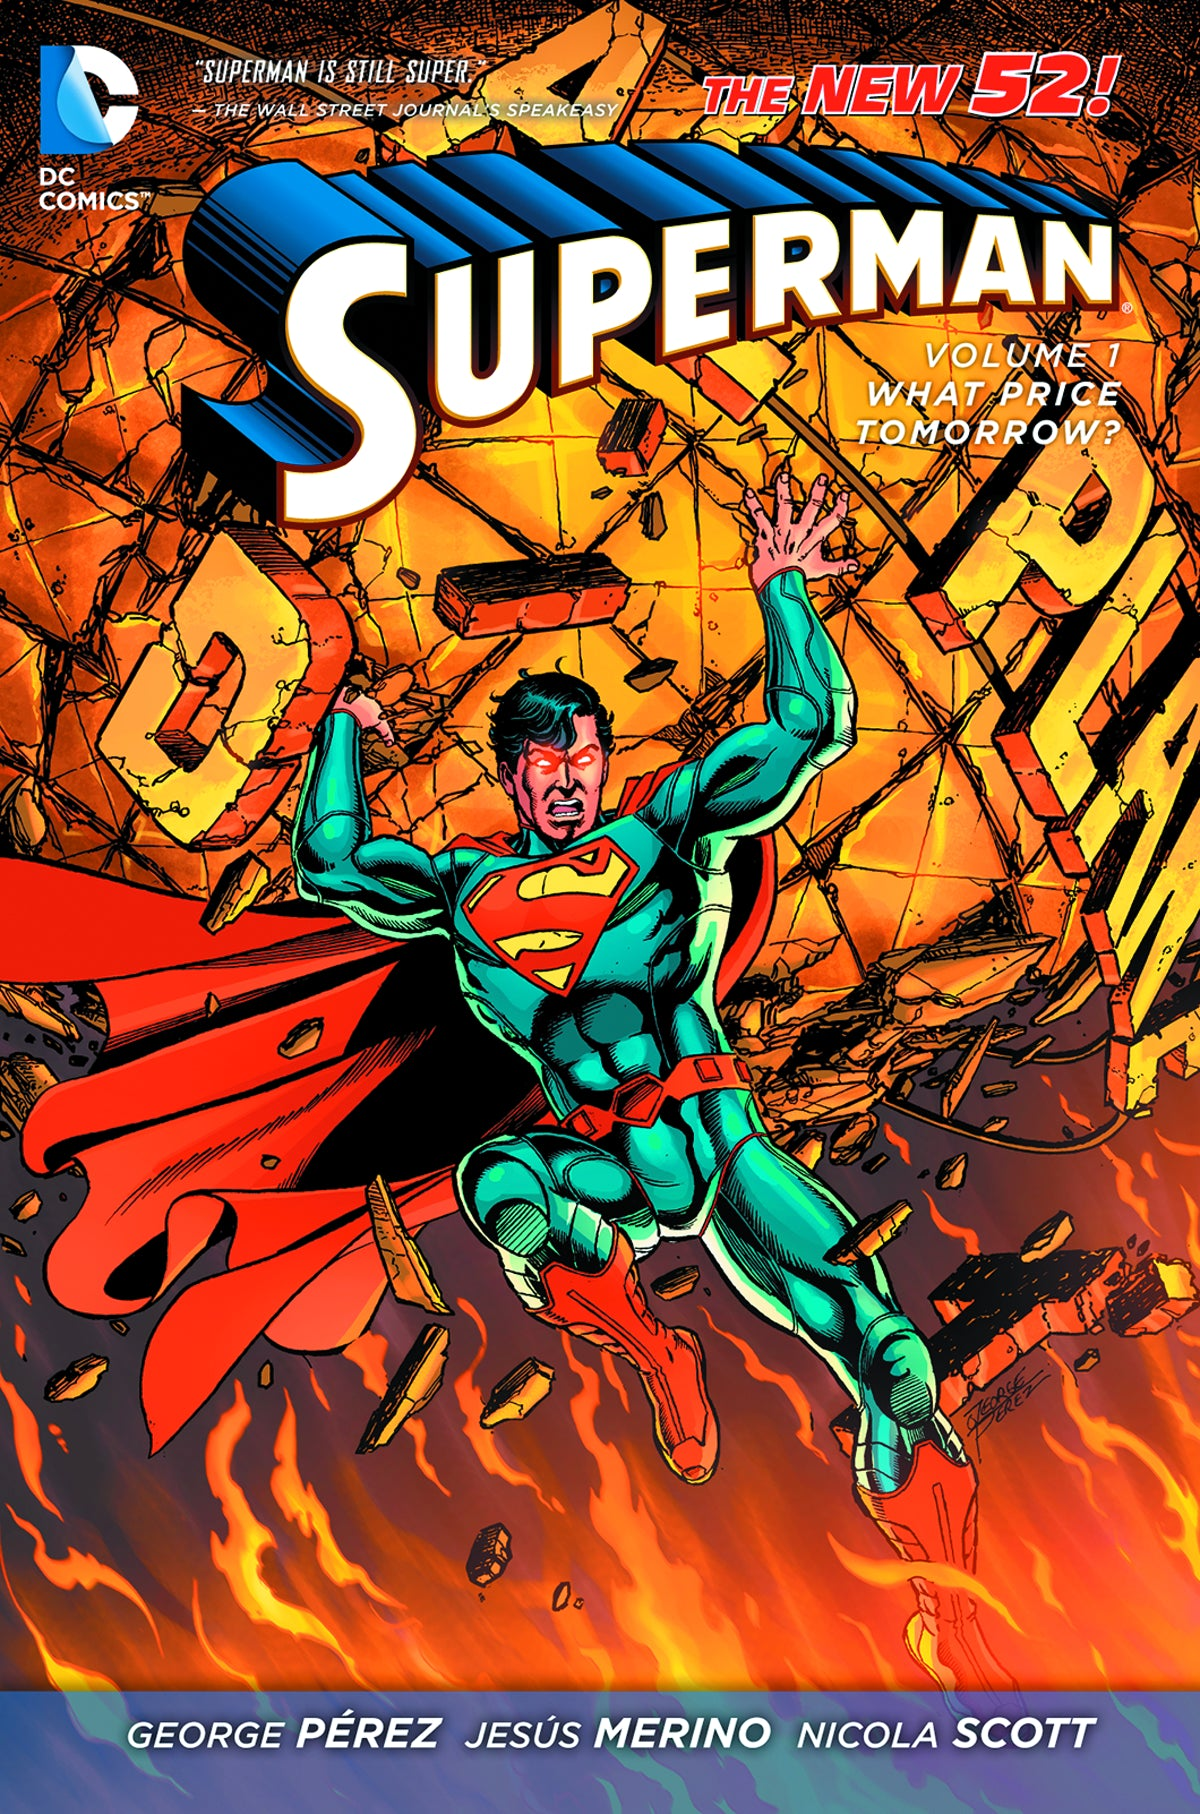 SUPERMAN TP VOL 01 WHAT PRICE TOMORROW (N52) | Game Master's Emporium (The New GME)